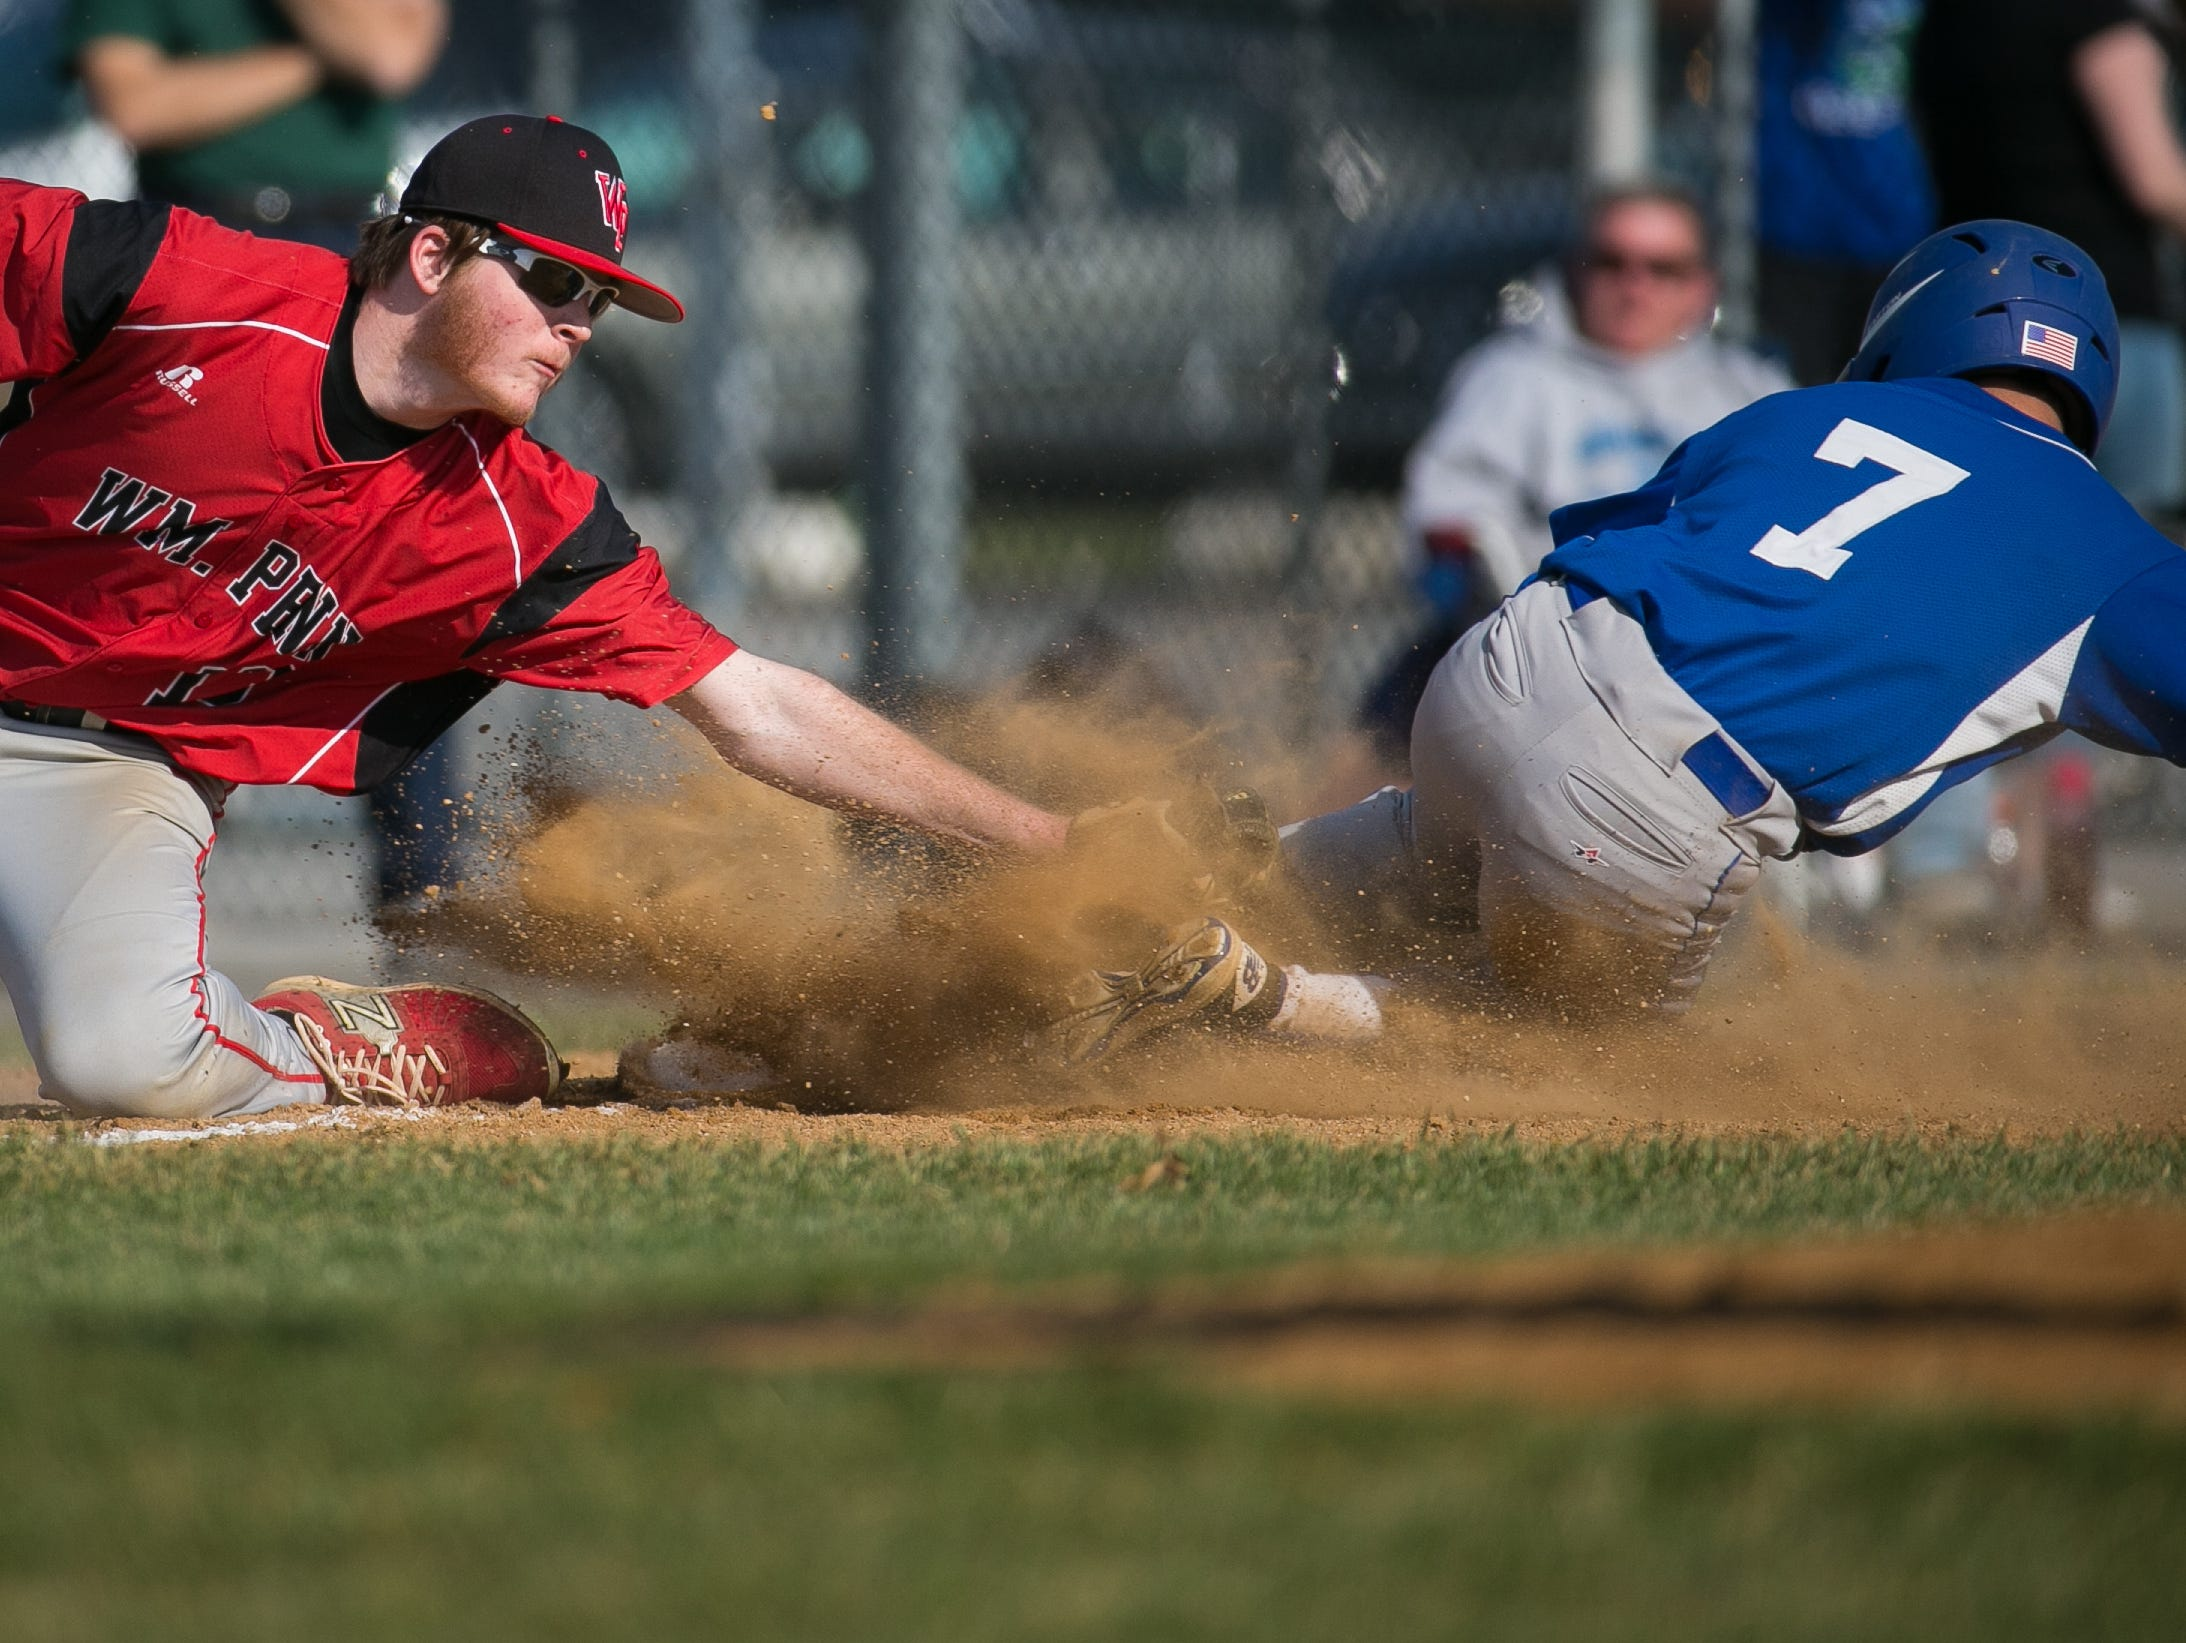 St. Georges outfielder Dominic Durante slides safely into third as William Penn third baseman Matthew North is late with the tag.